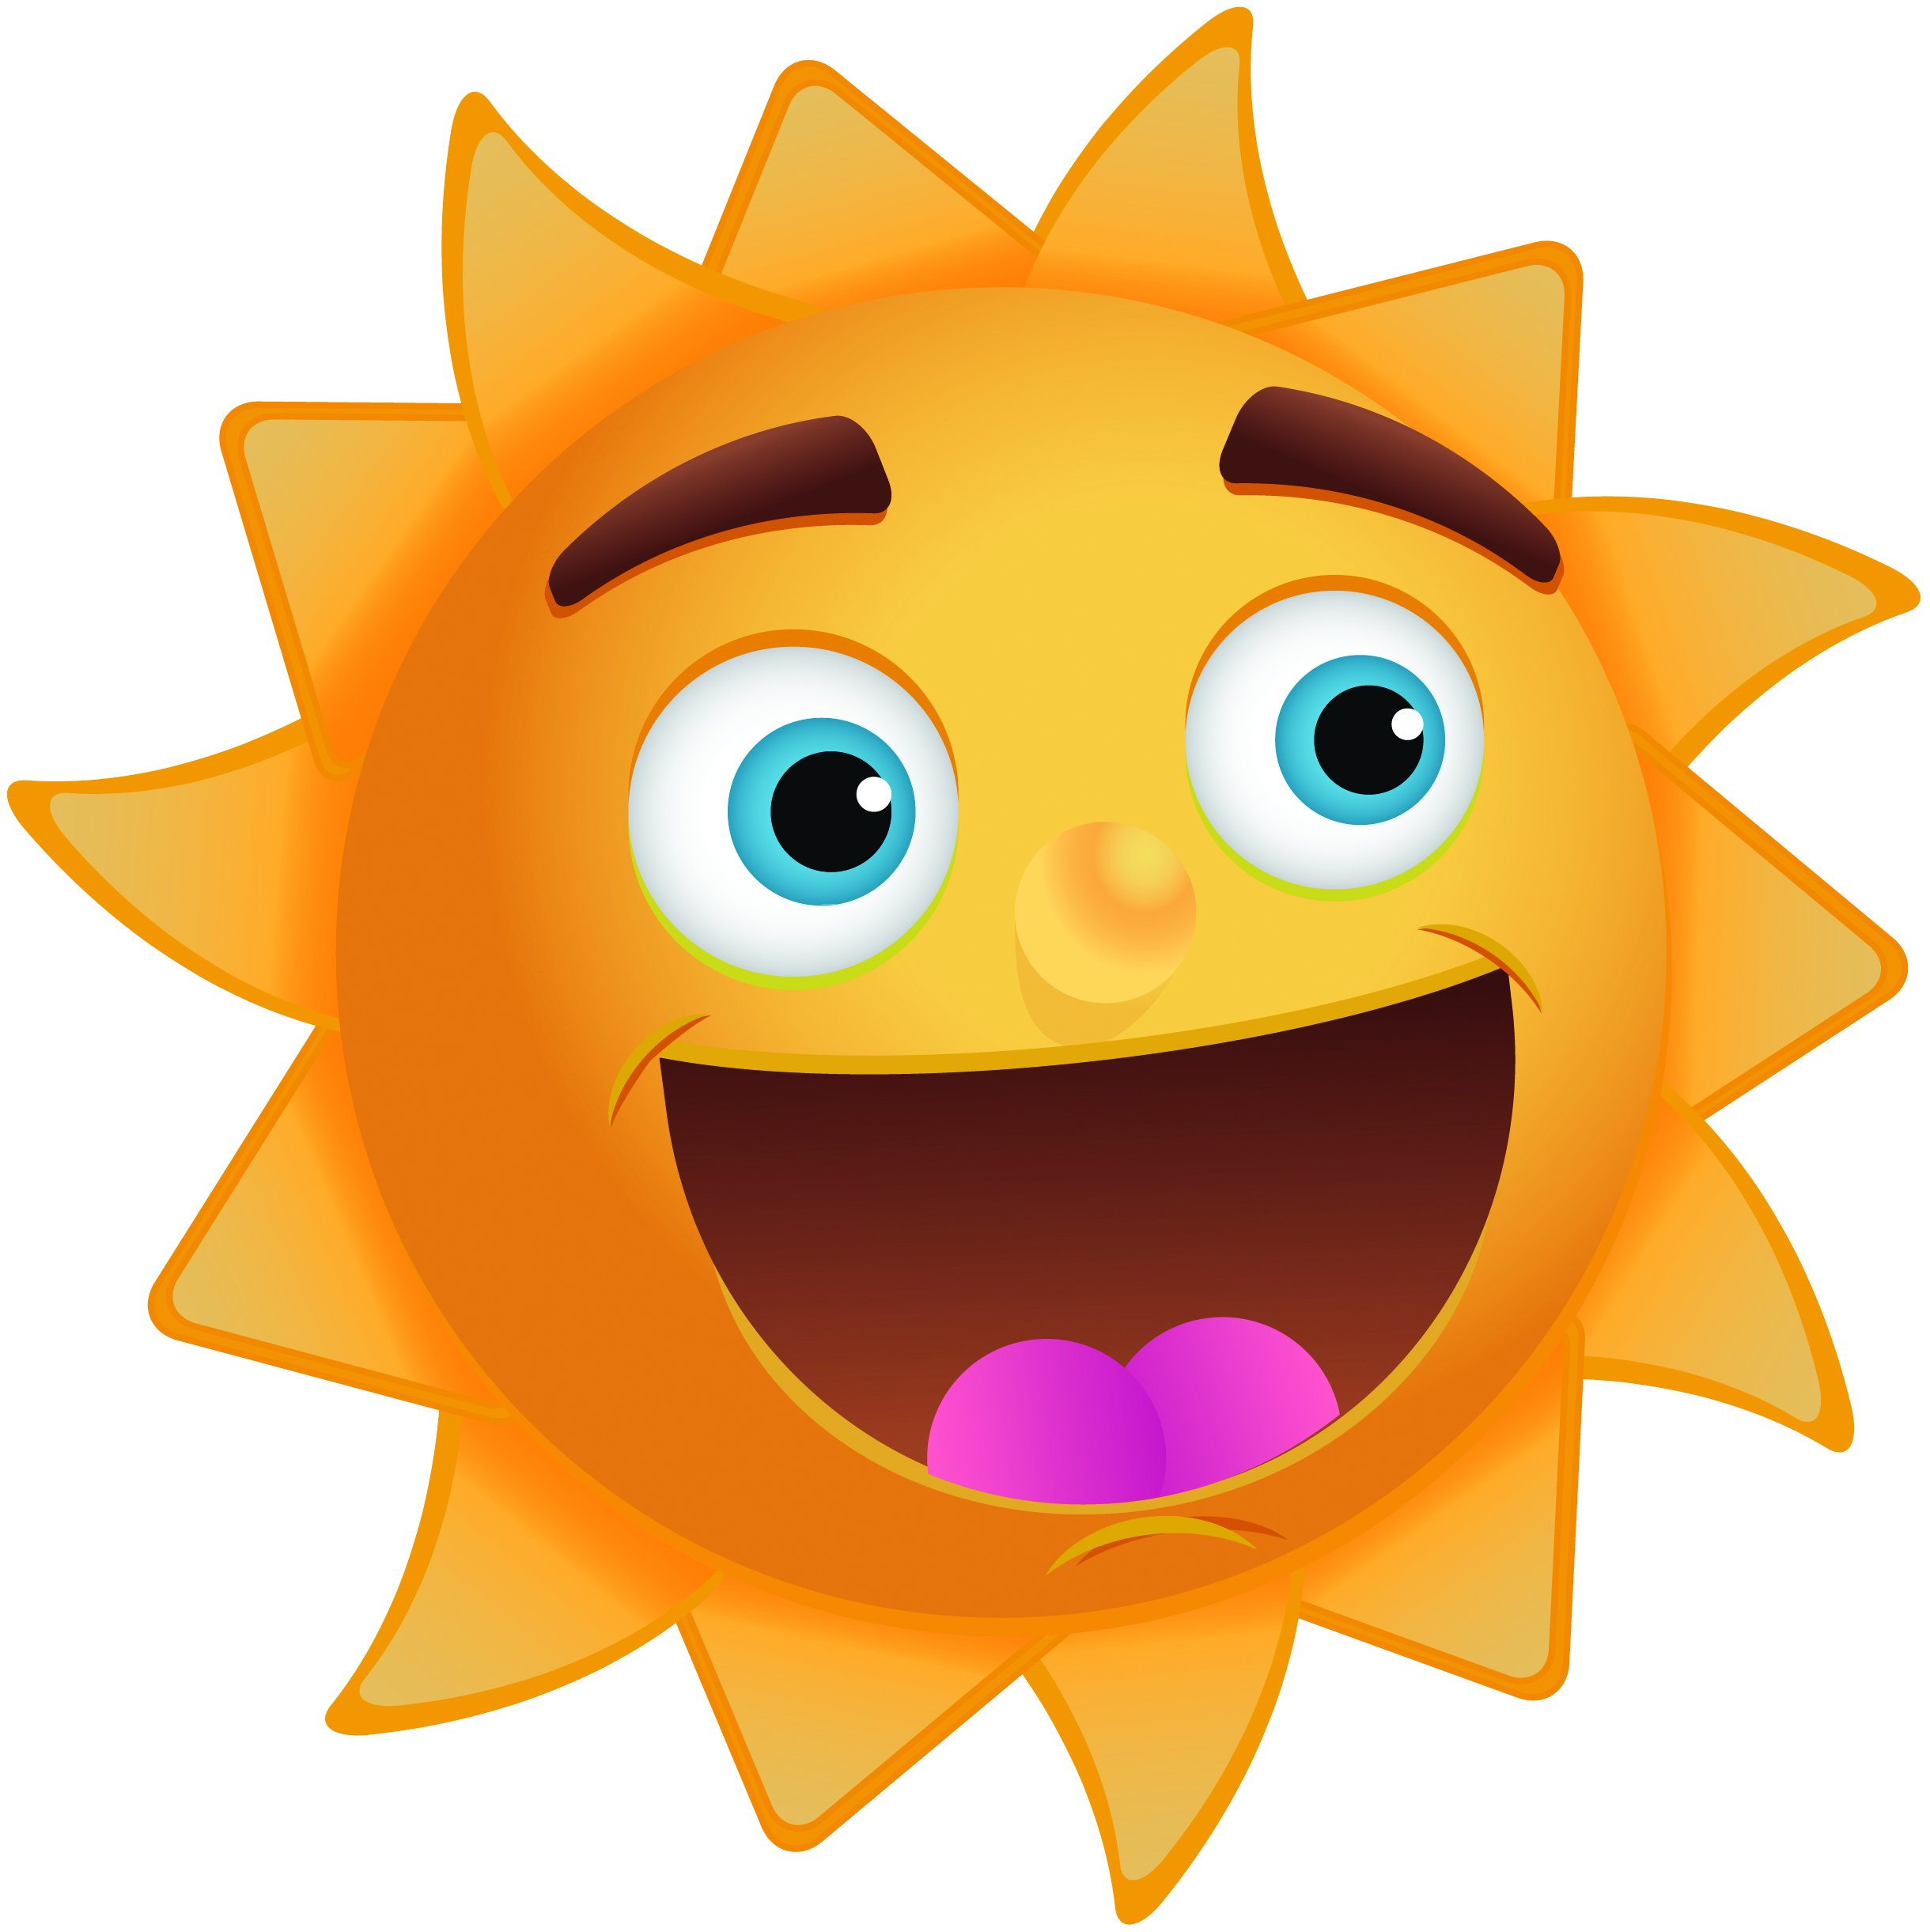 2440x2443 Sunny Day Clipart Image A Smiling